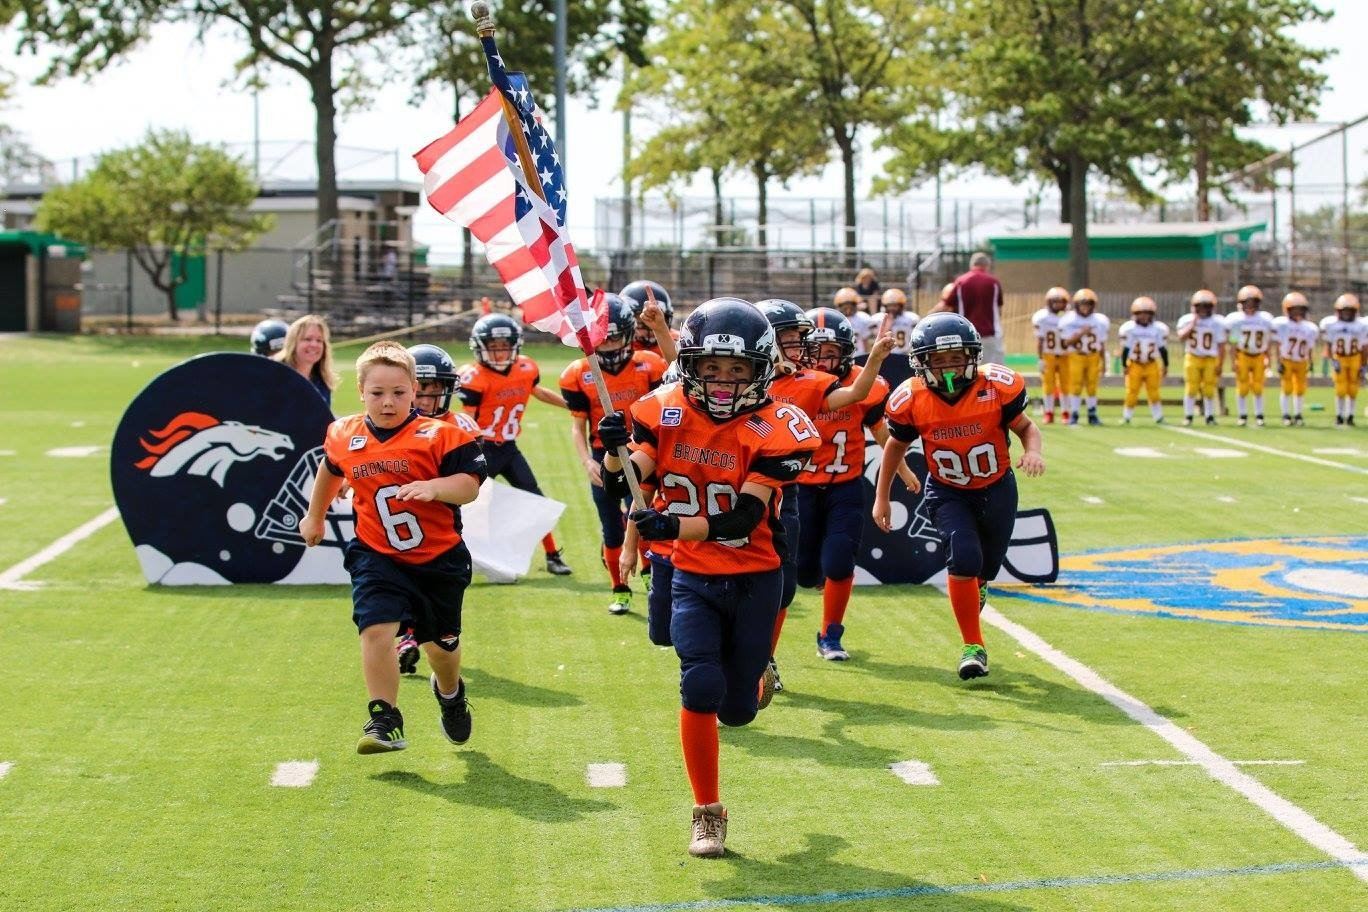 The Long Island Broncos 2020 football season is in limbo, after Gov. Andrew Cuomo's Monday announcement on youth sports limitations.